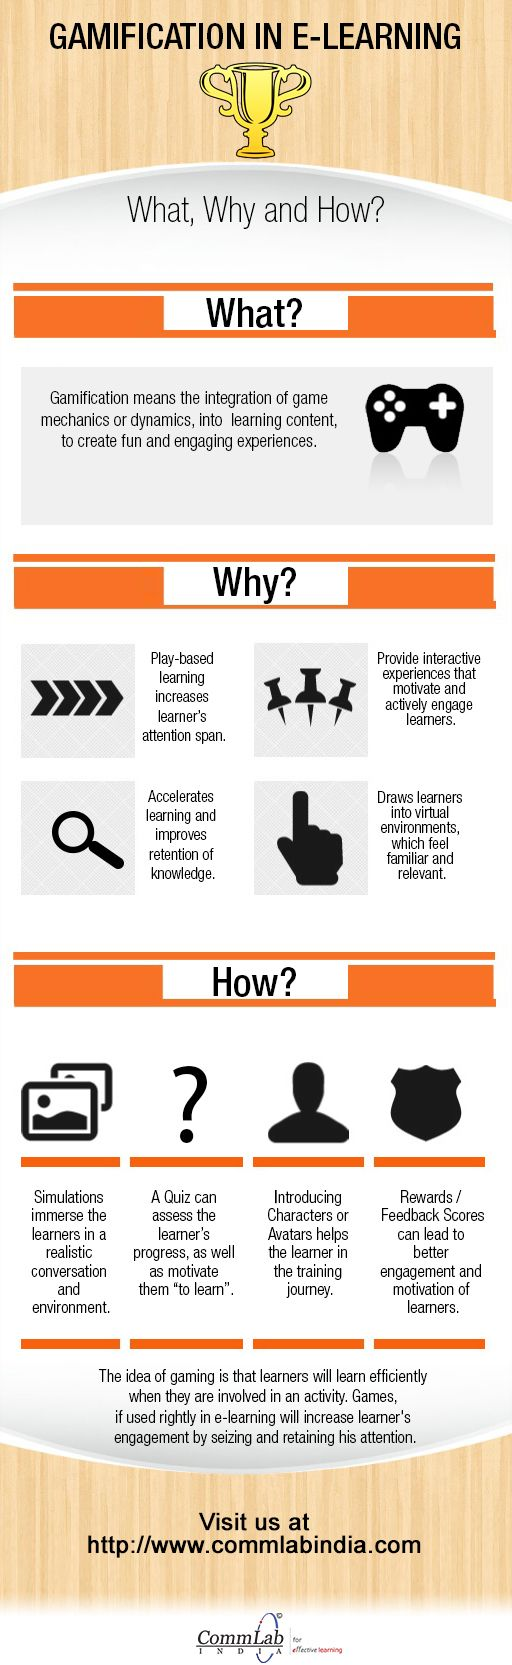 #Gamification in eLearning